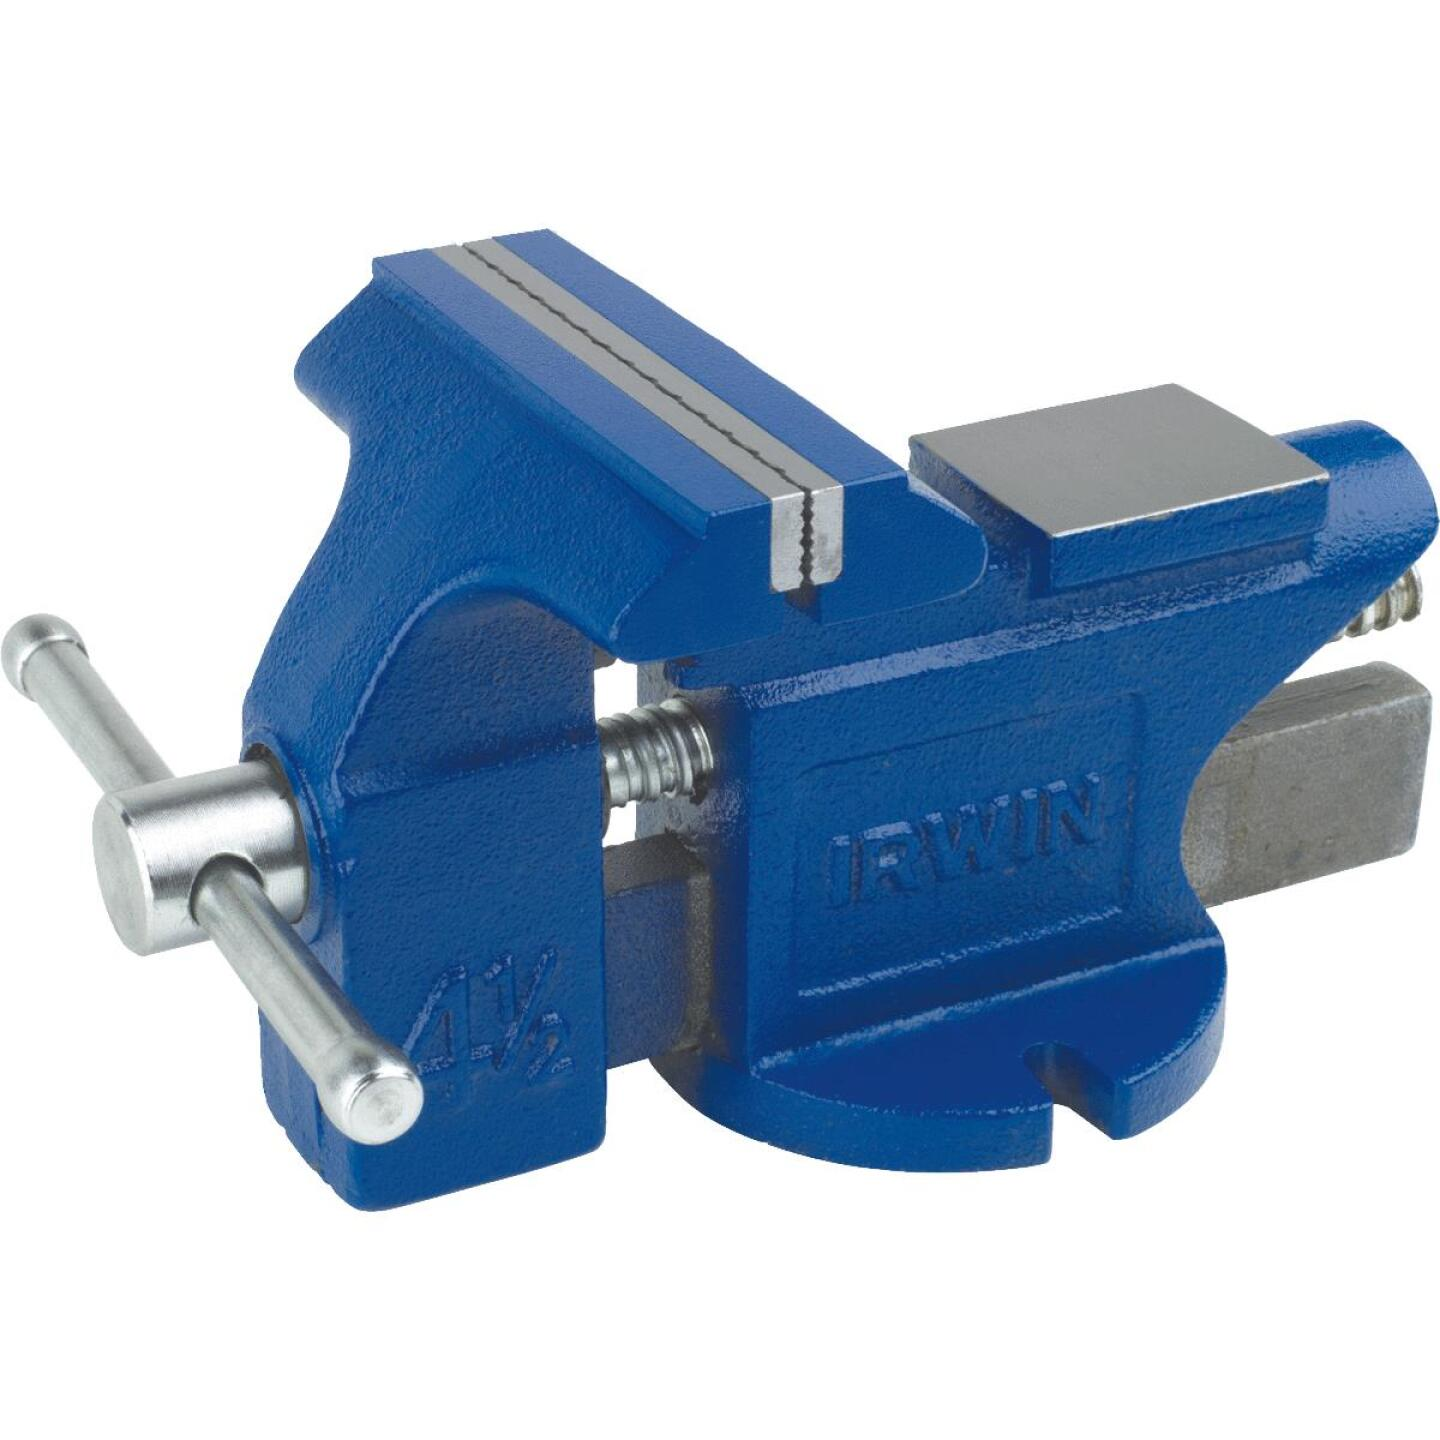 Irwin 4-1/2 In. Bench Vise Image 1